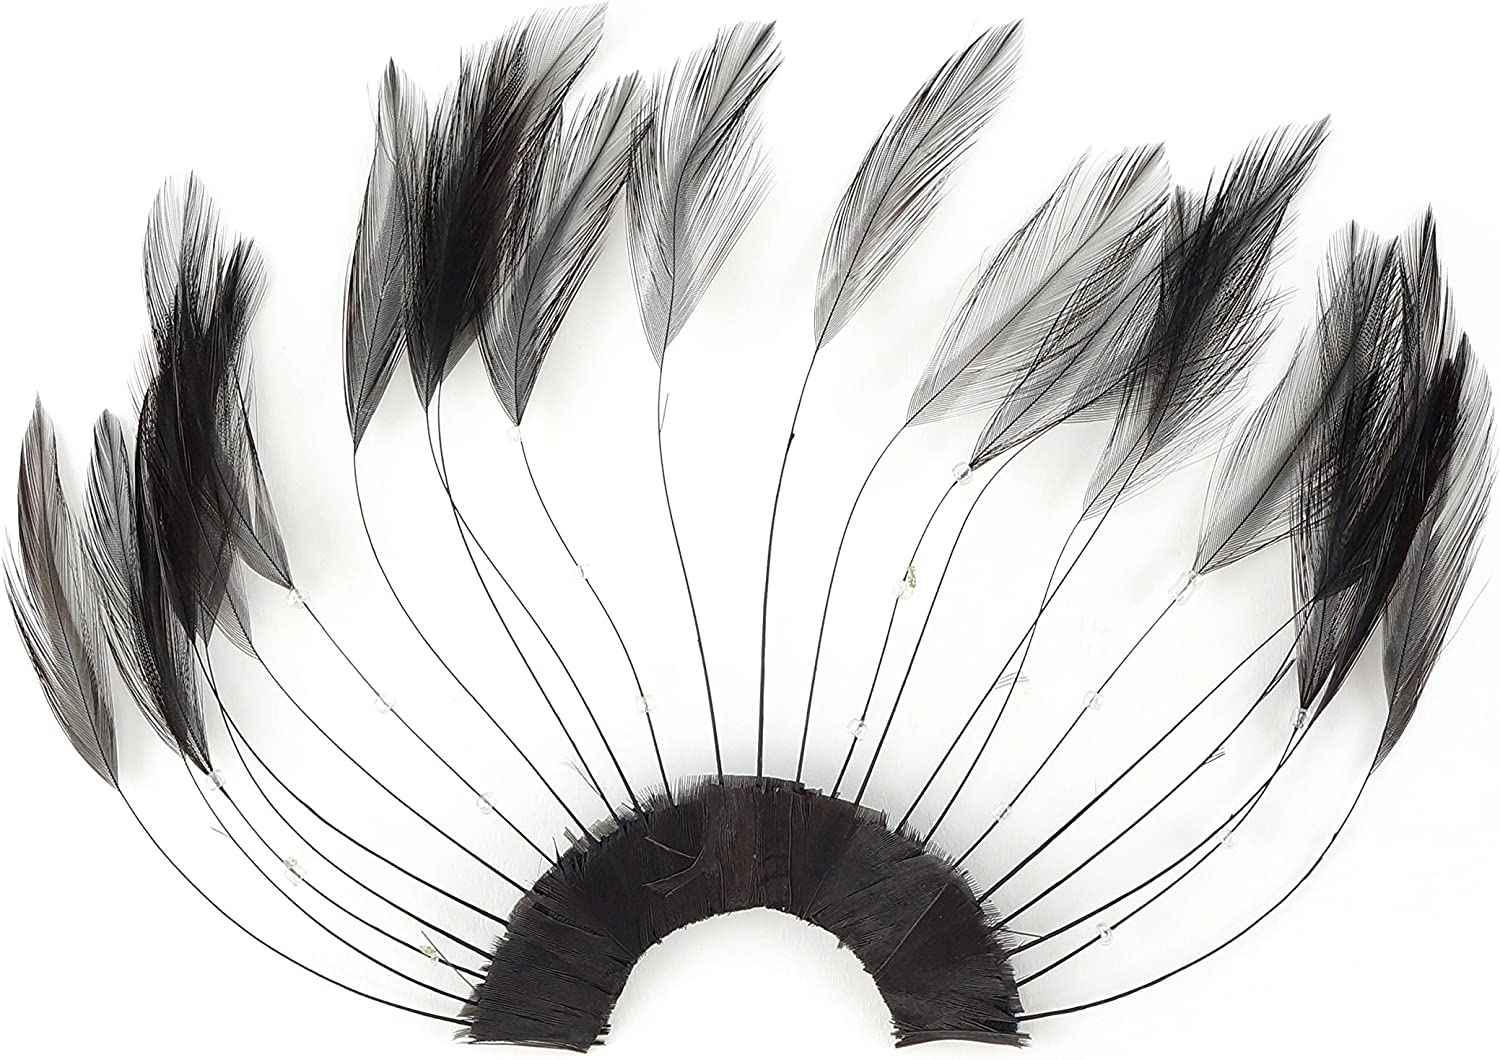 ZUCKER Brown Stripped Hackle Feather Plate- 4 security years warranty 12pcs Craf Millinery